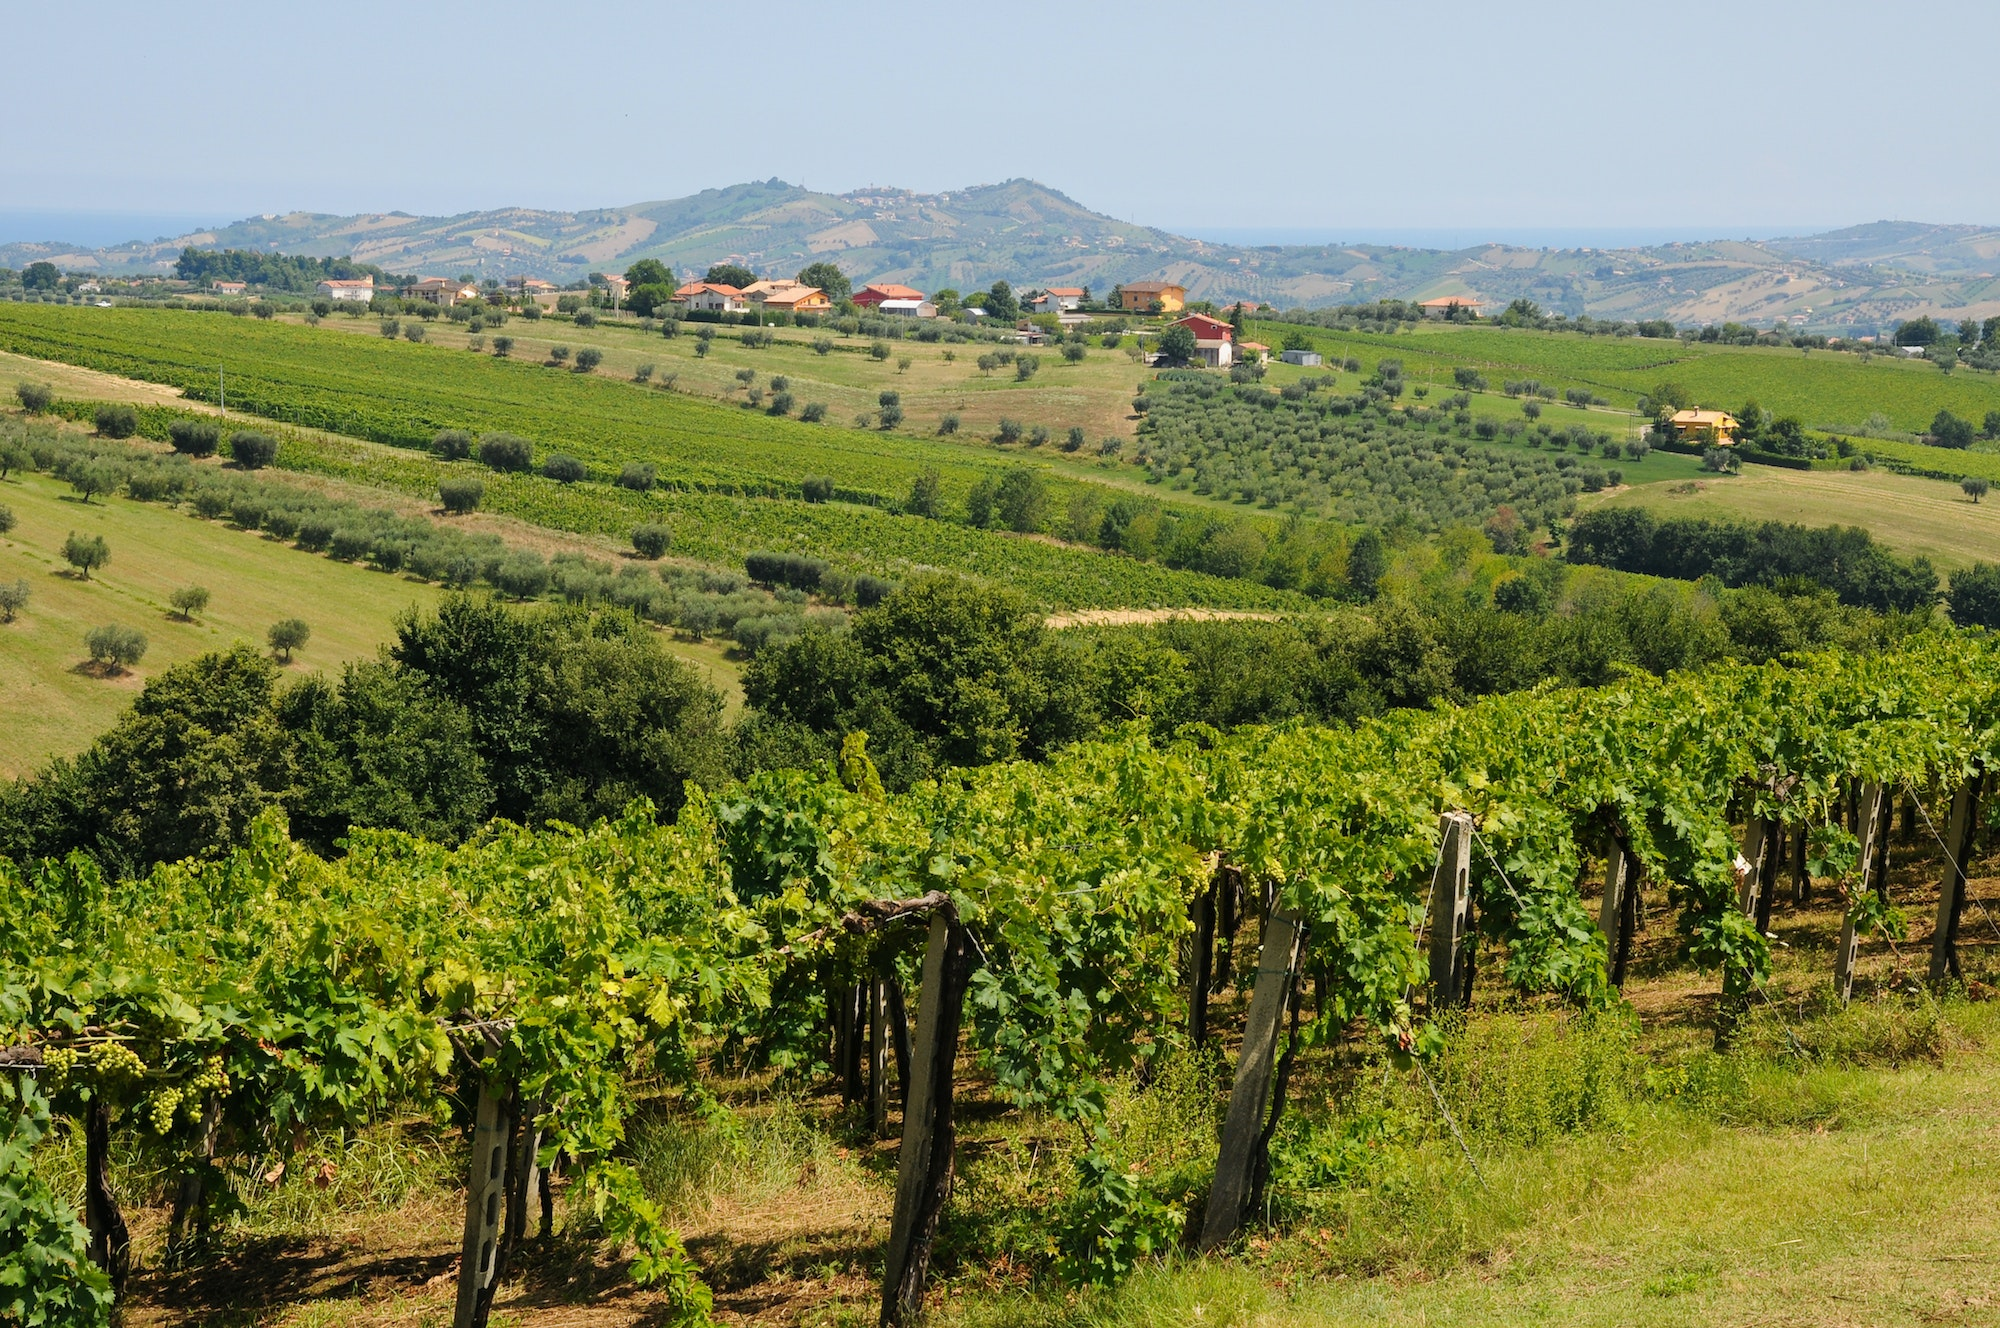 Abruzzo is an Italian wine region located in the country's mountainous central area near the Adriatic Sea.